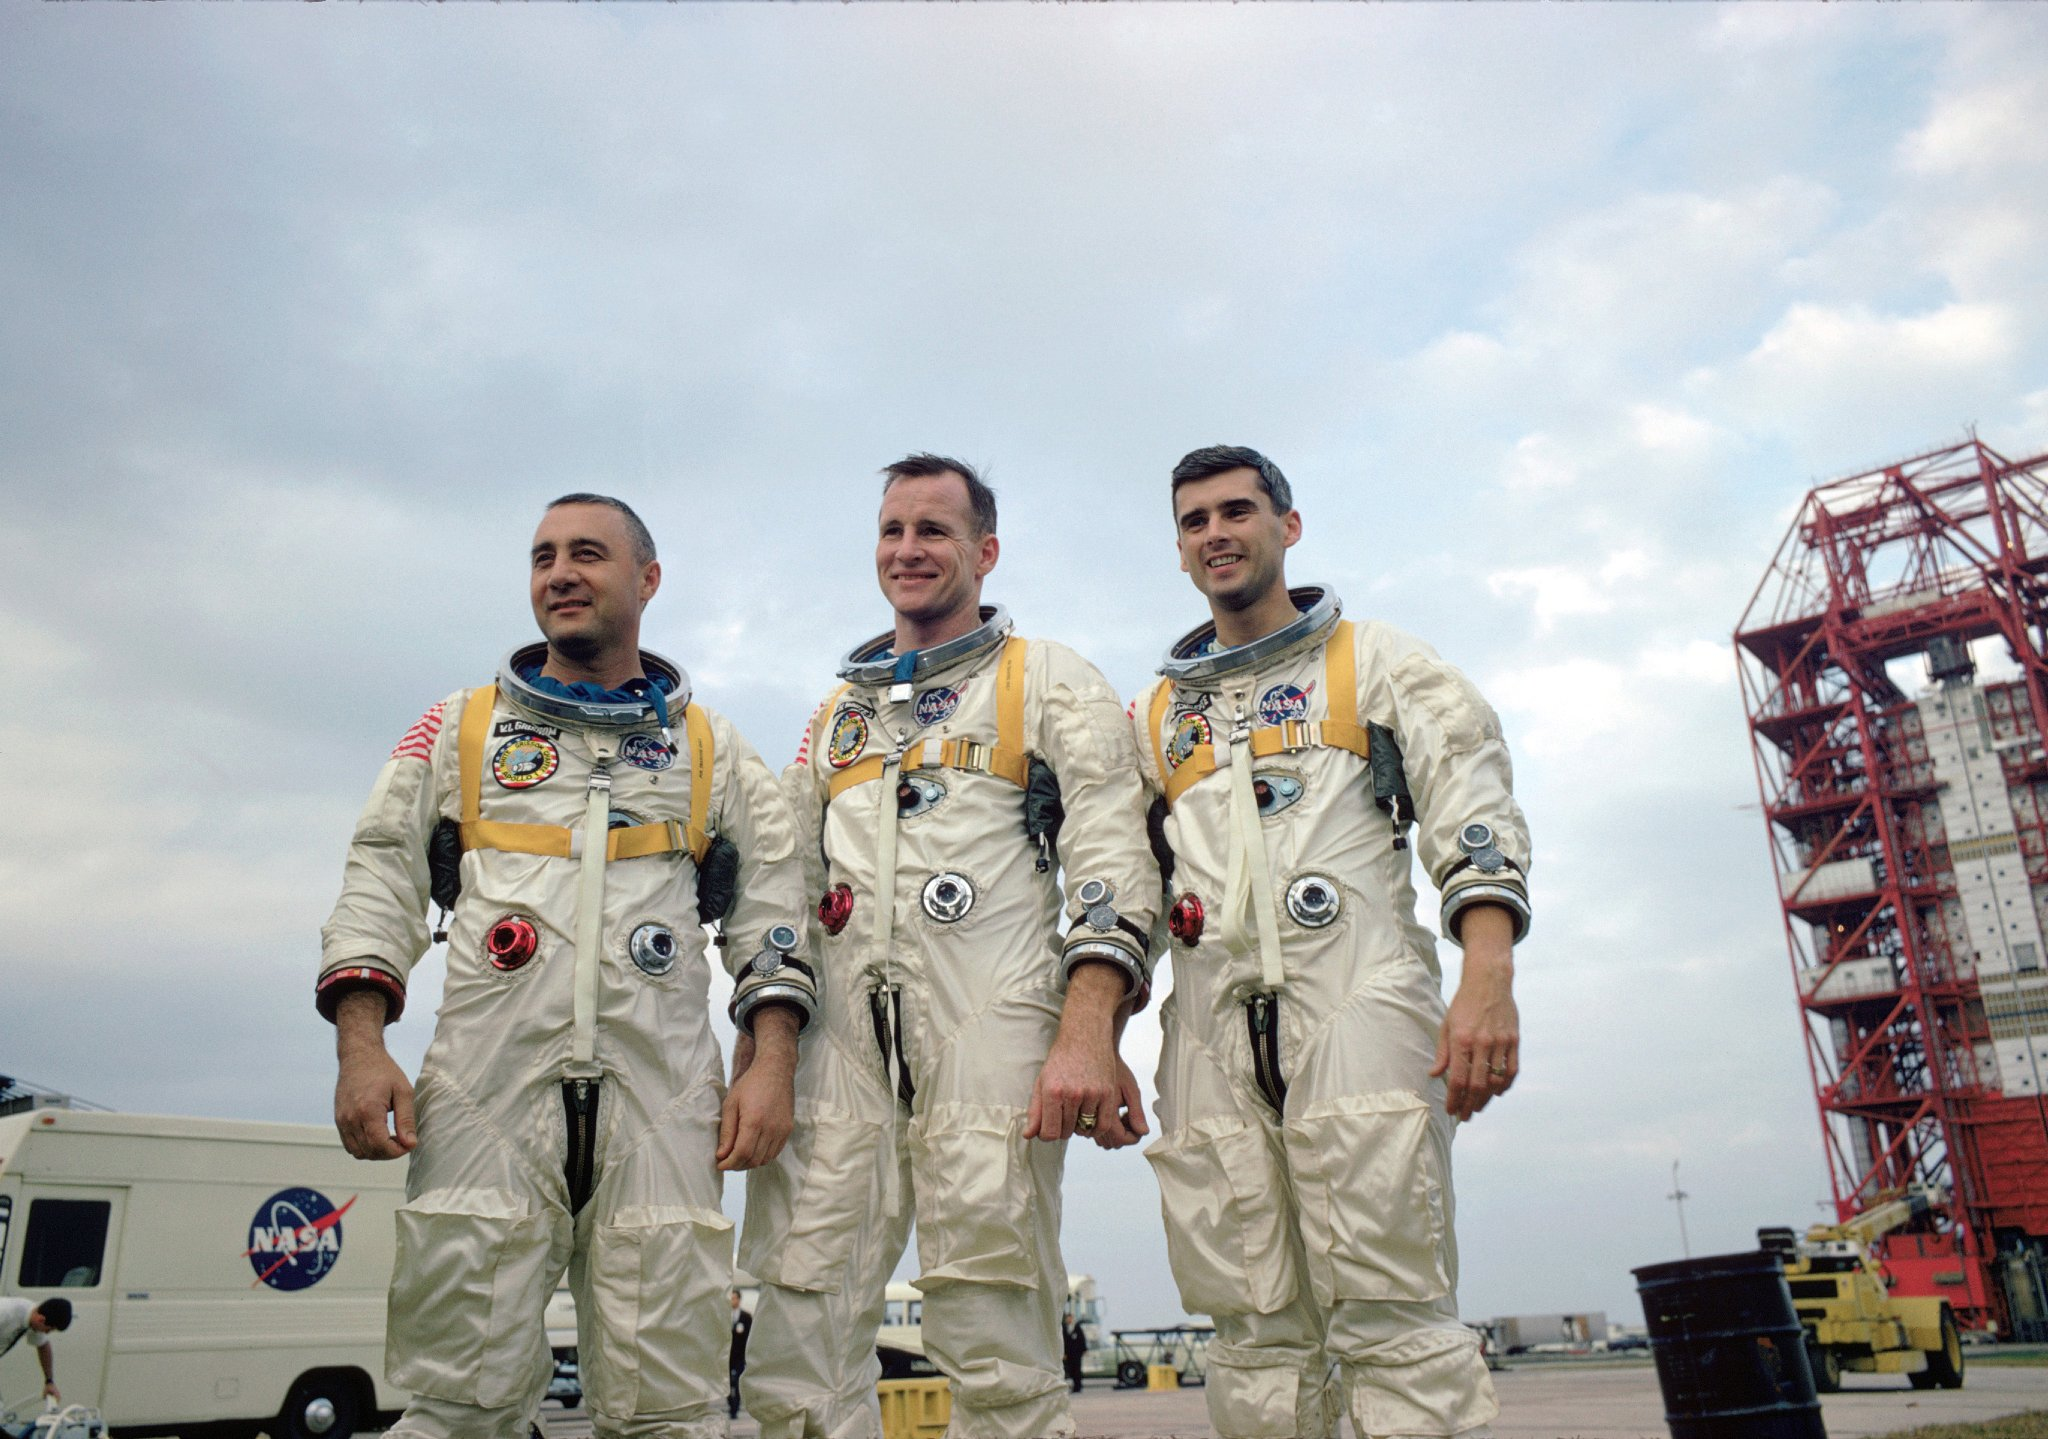 "The prime crew of Apollo 1, Virgil I ""Gus"" Grissom, Edward H. White, II, and Roger B. Chaffee, during training in Florida. Credit: NASA"